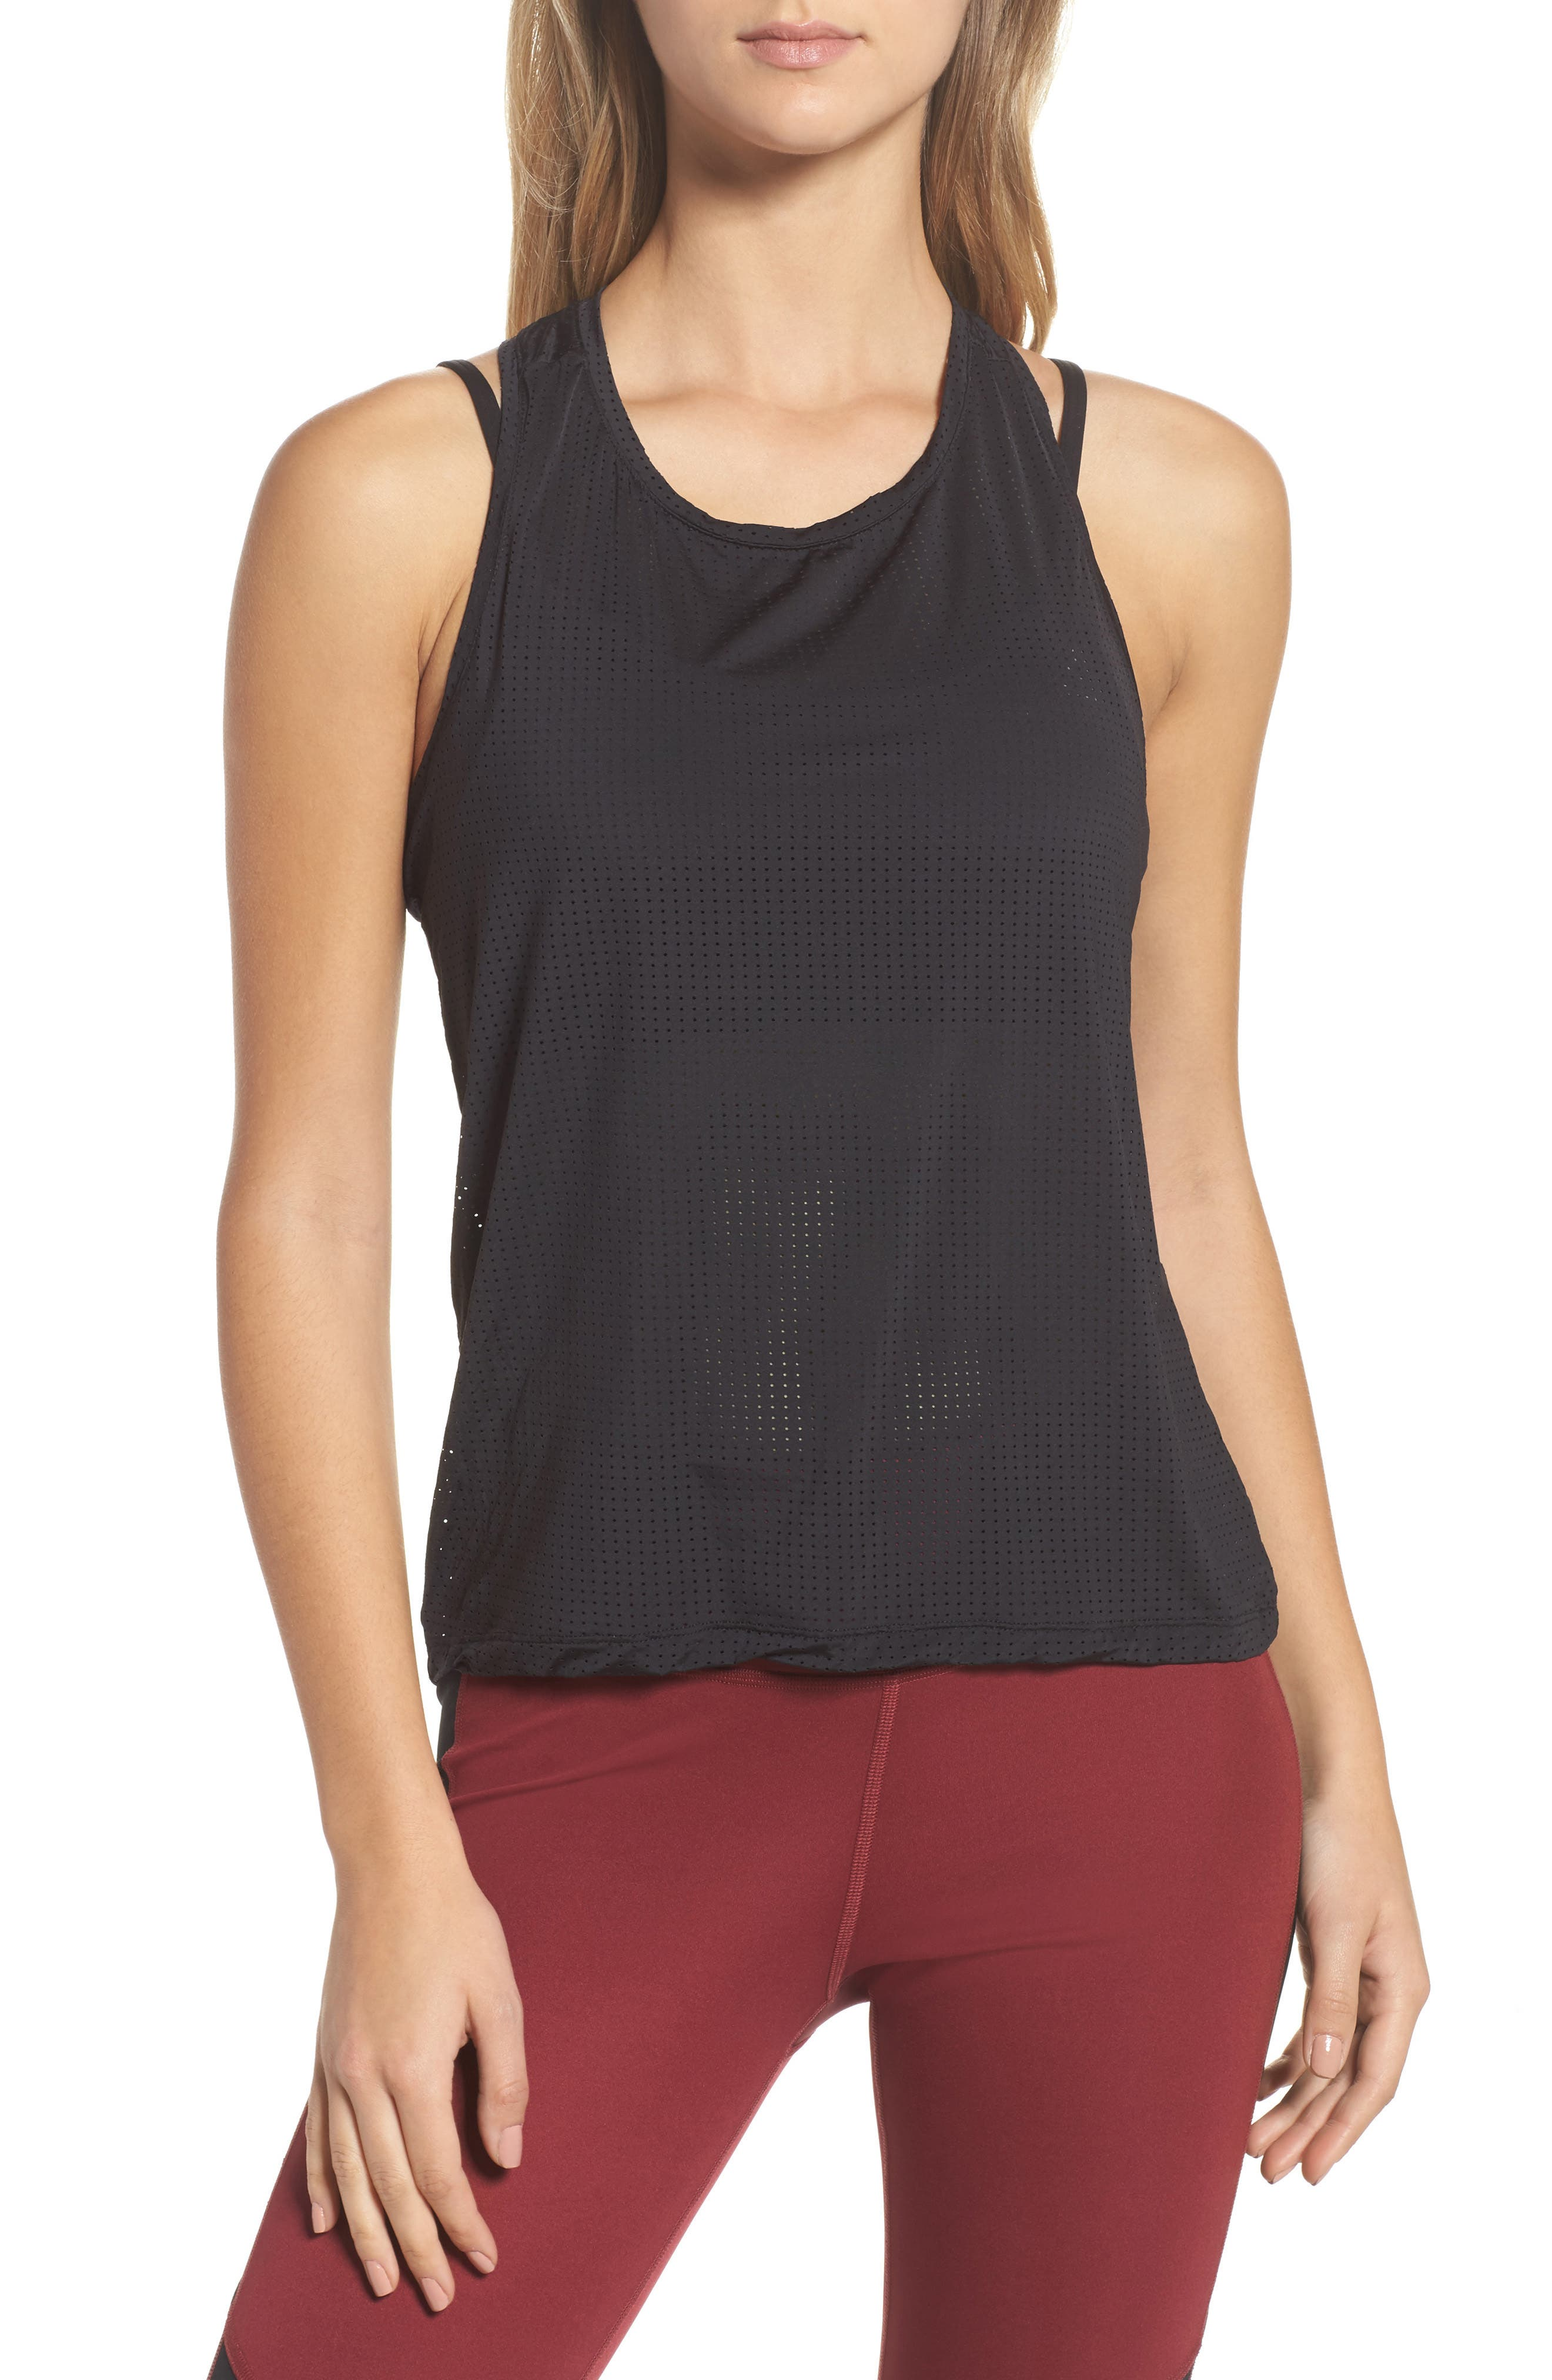 Reebok Perforated Racerback Tank